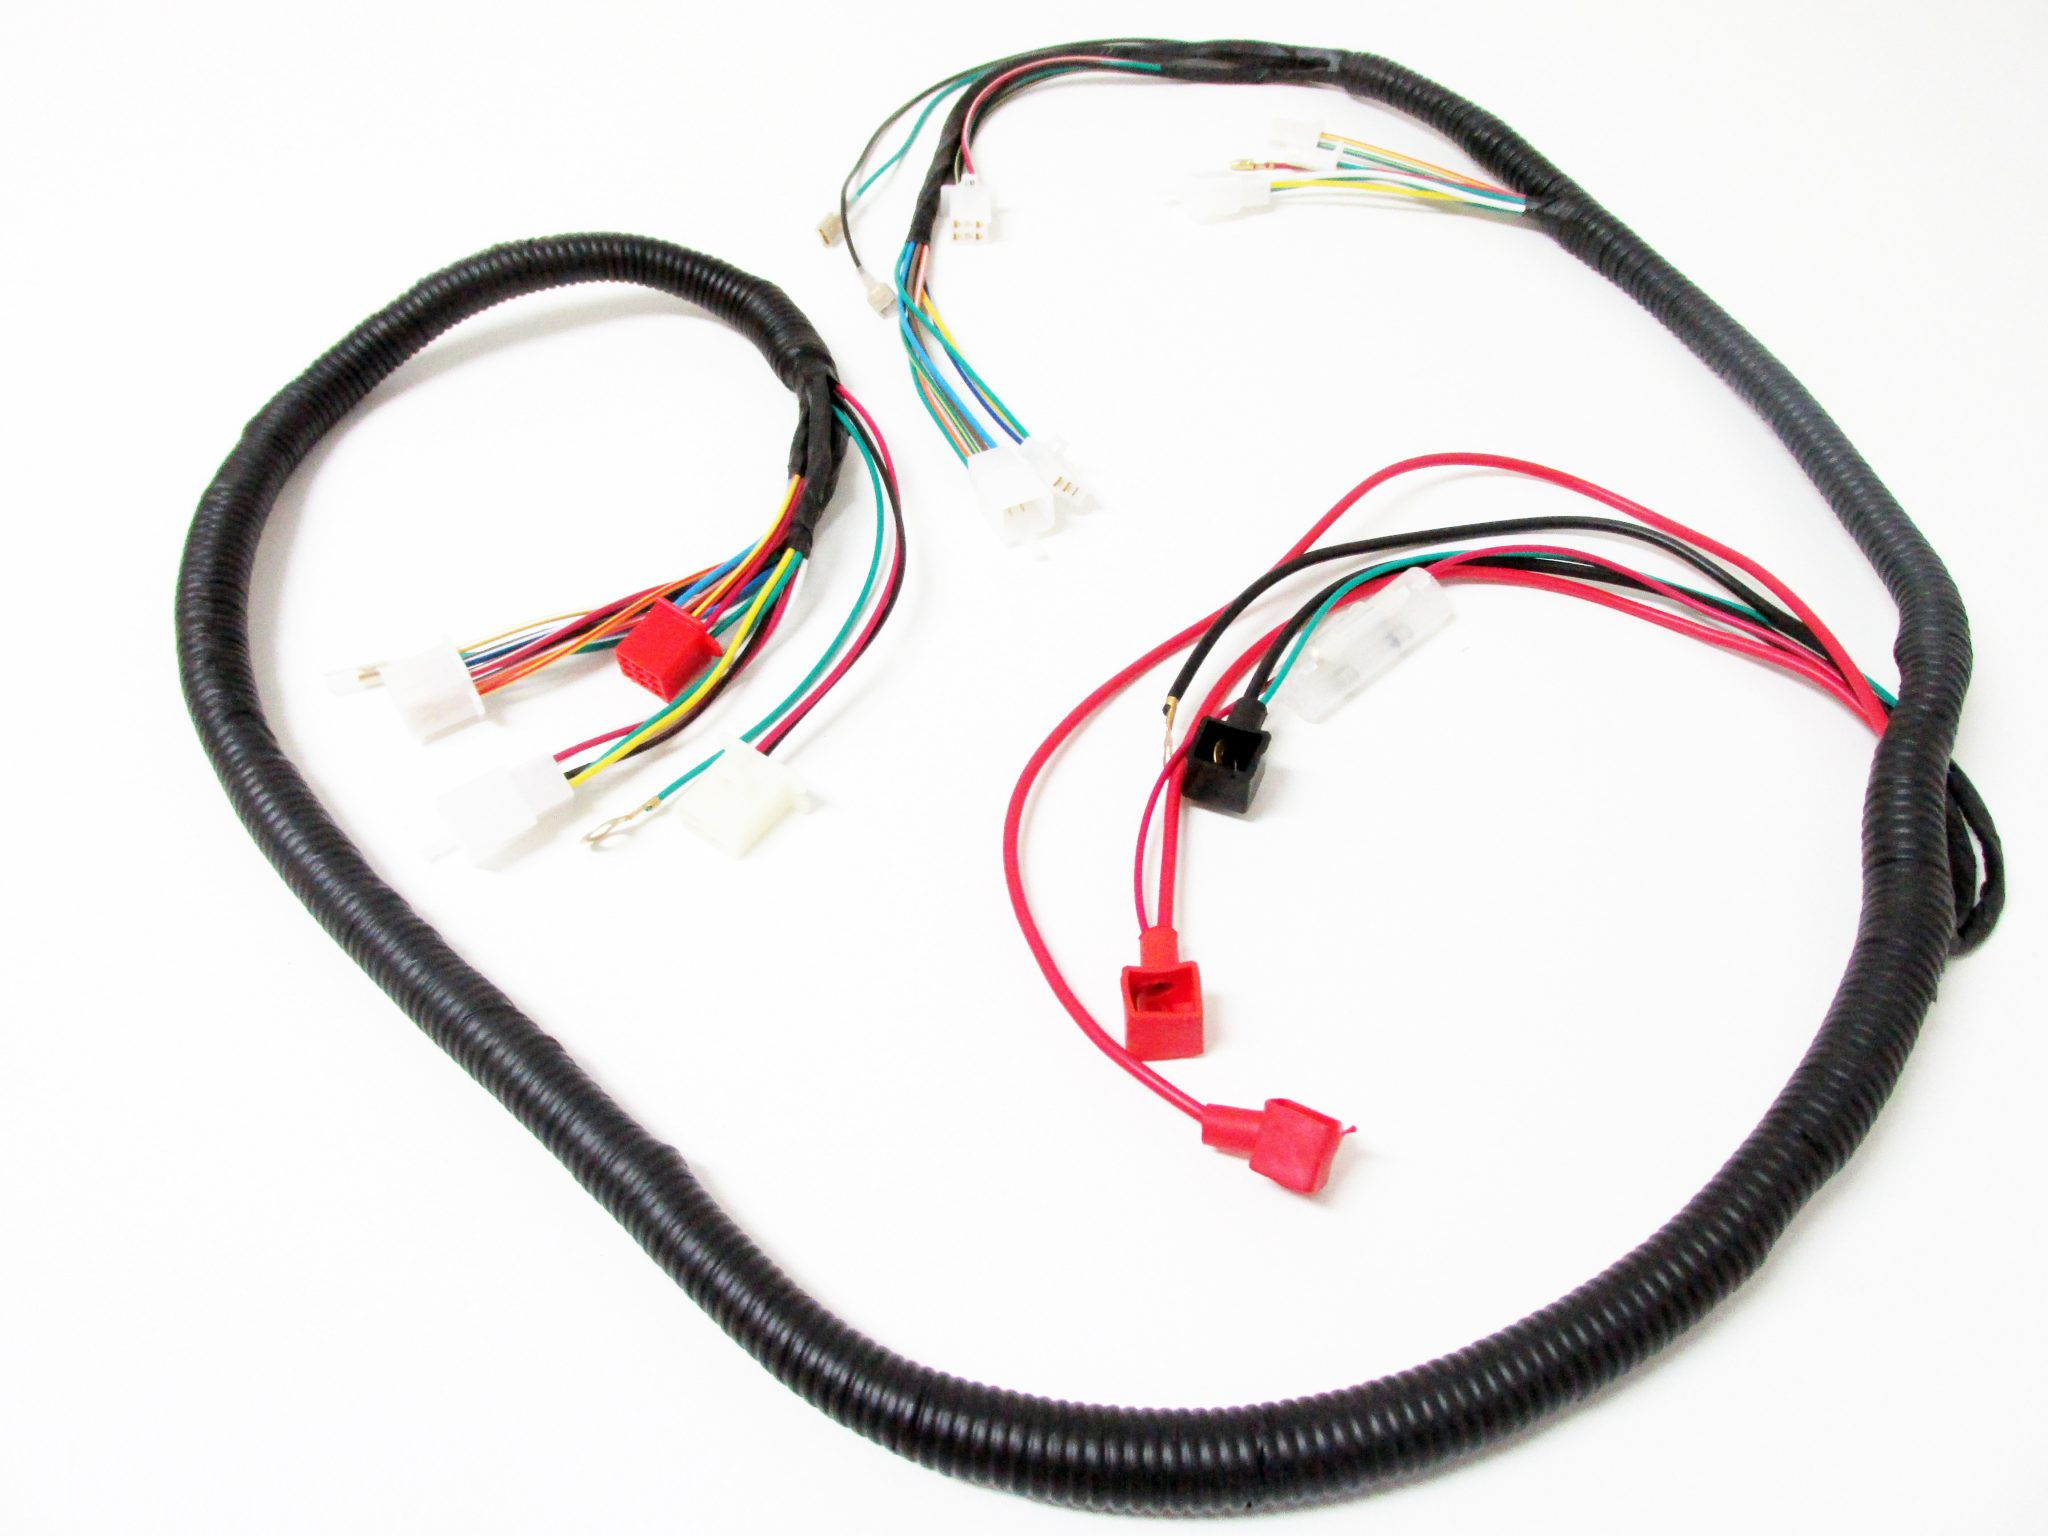 scooter electrical wire harness 150cc  125cc hotstreet Wiring Harness Ends wire harness 10